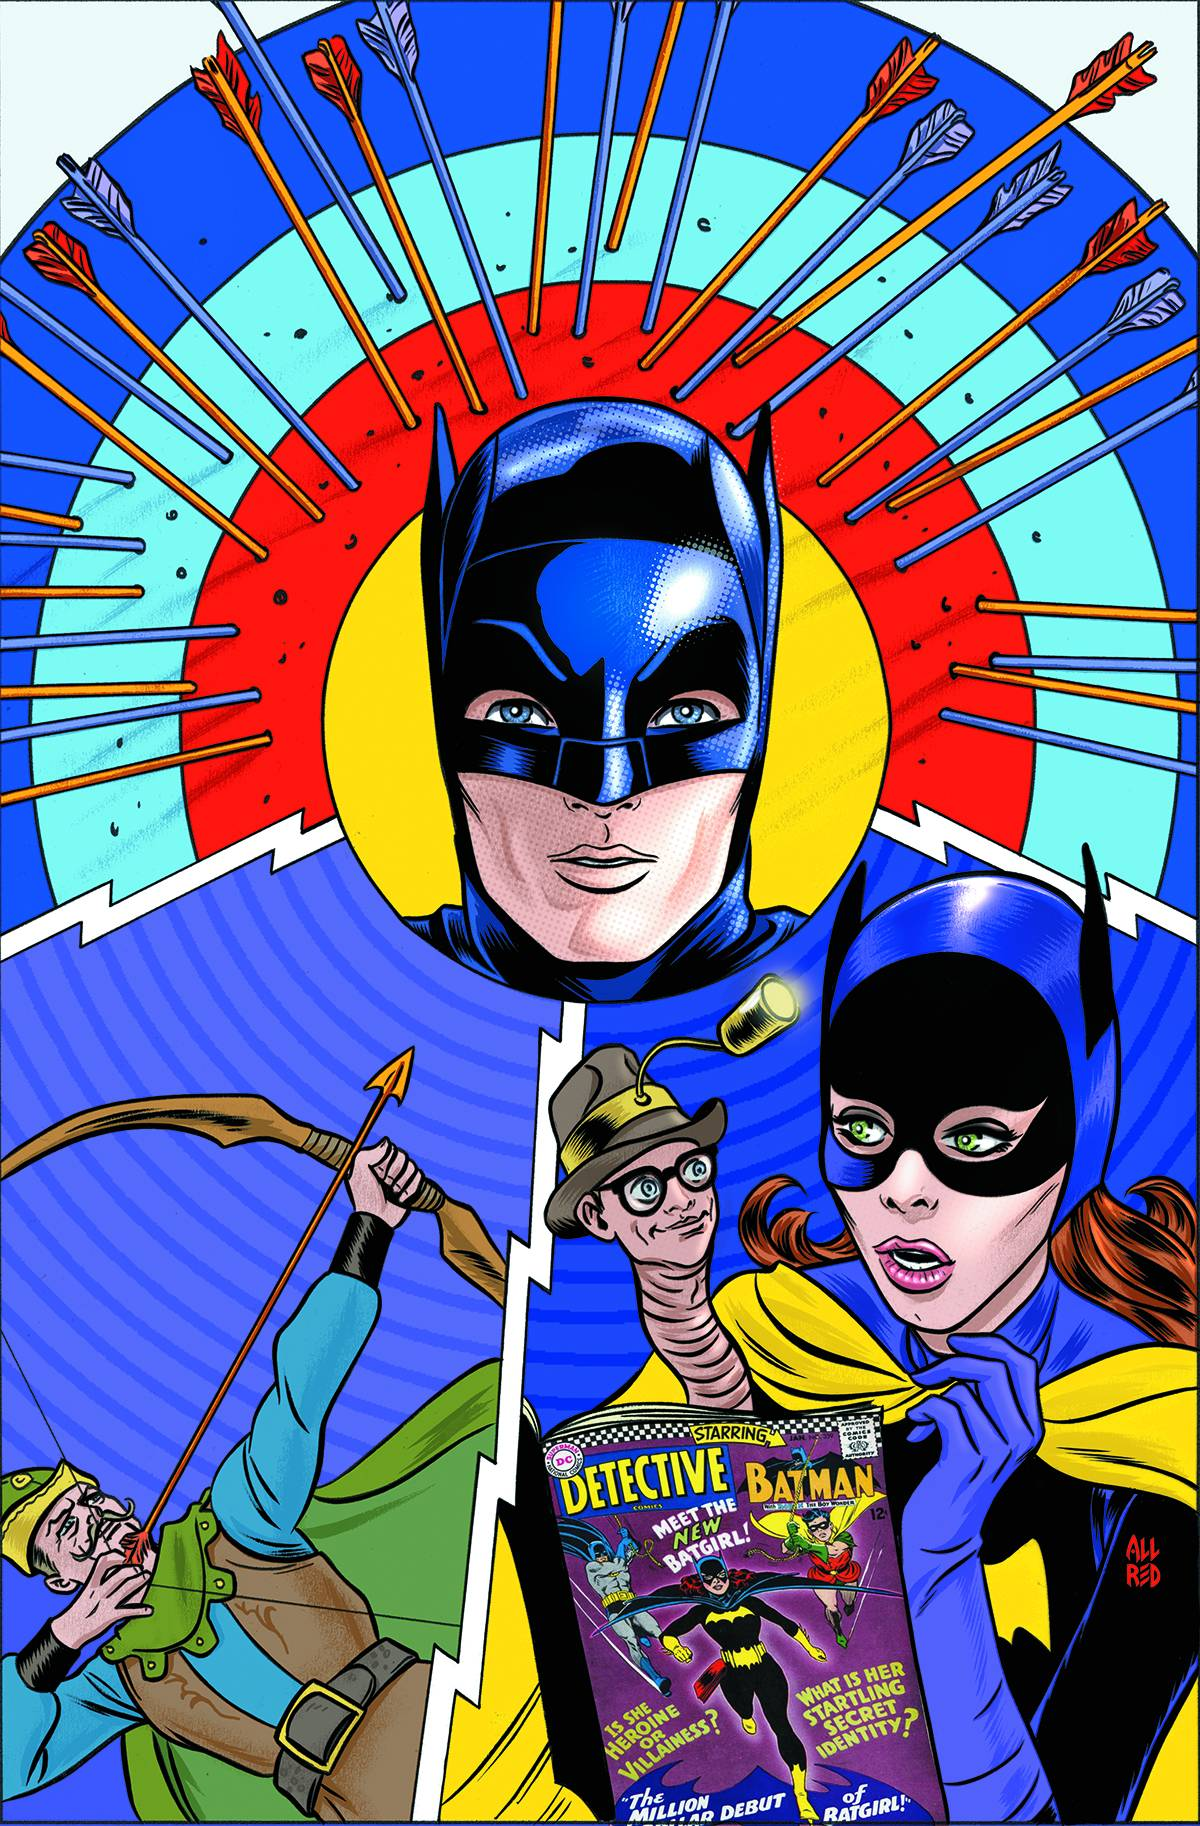 Cover artwork to  Batman '66  #18 by Mike Allred and Laura Allred. © 2014 DC Comics.